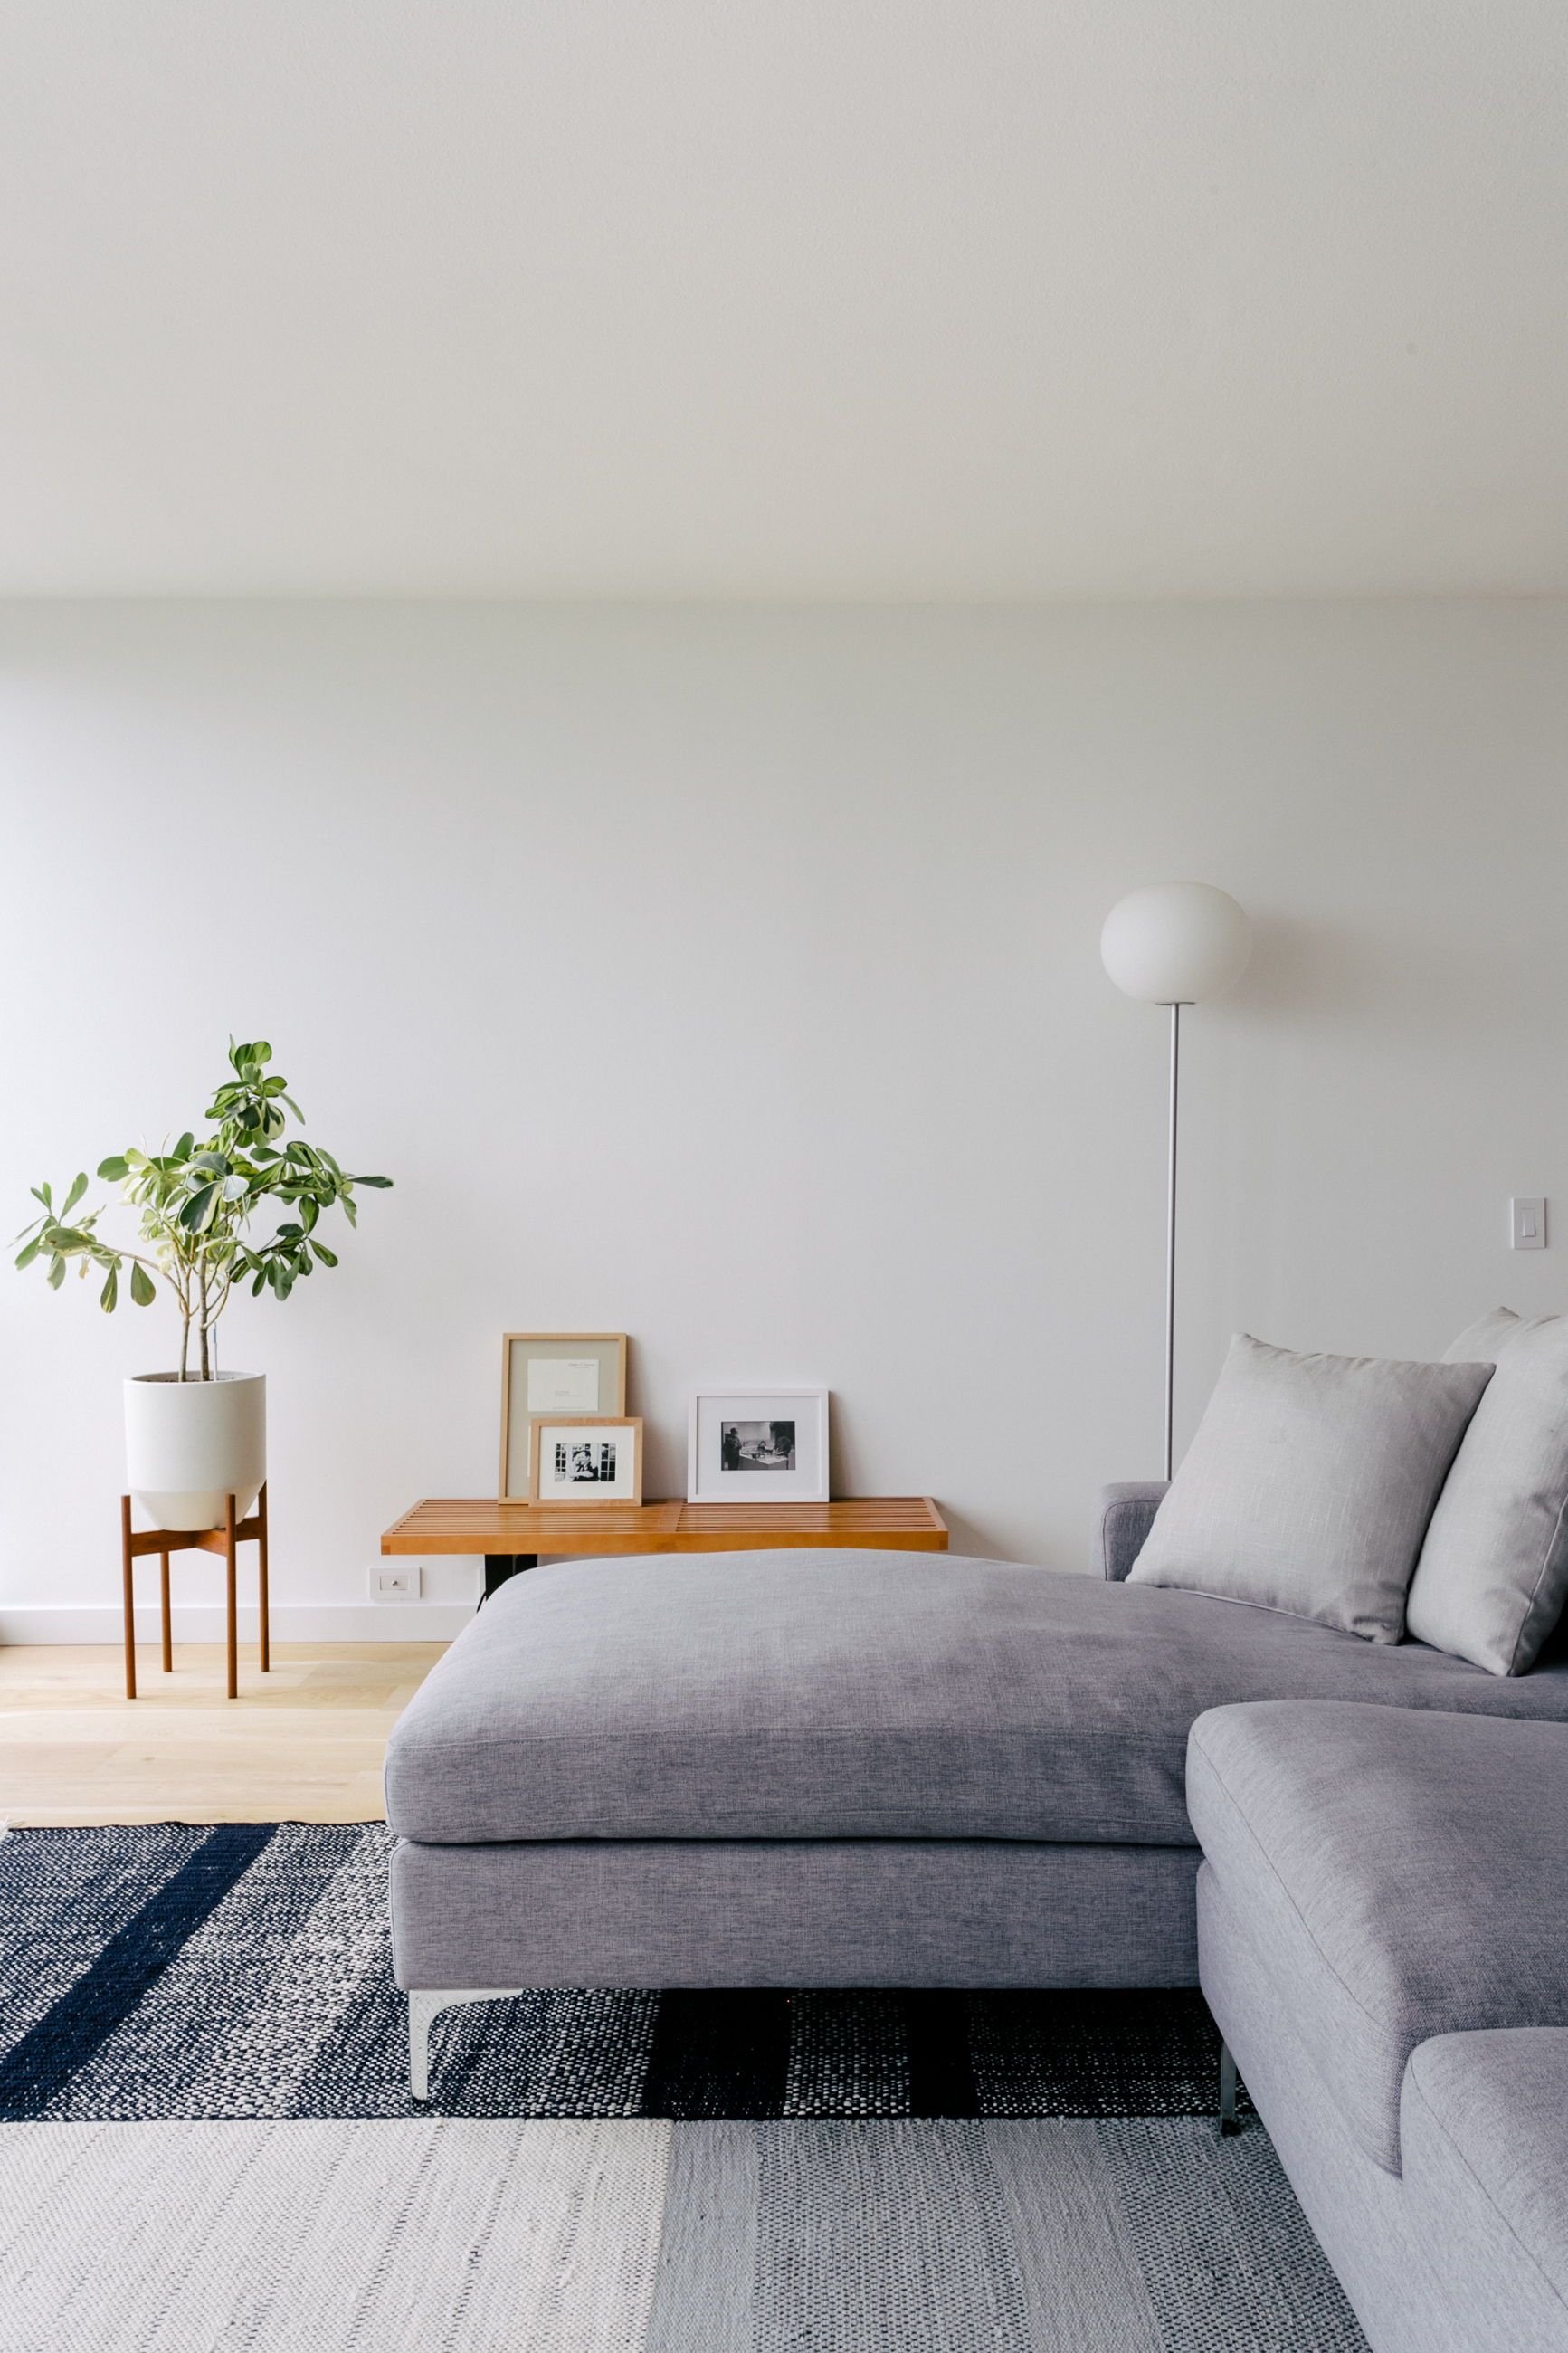 Sloan in 2019 | Sloan | Sectional sofa, Interior house colors, Best ...